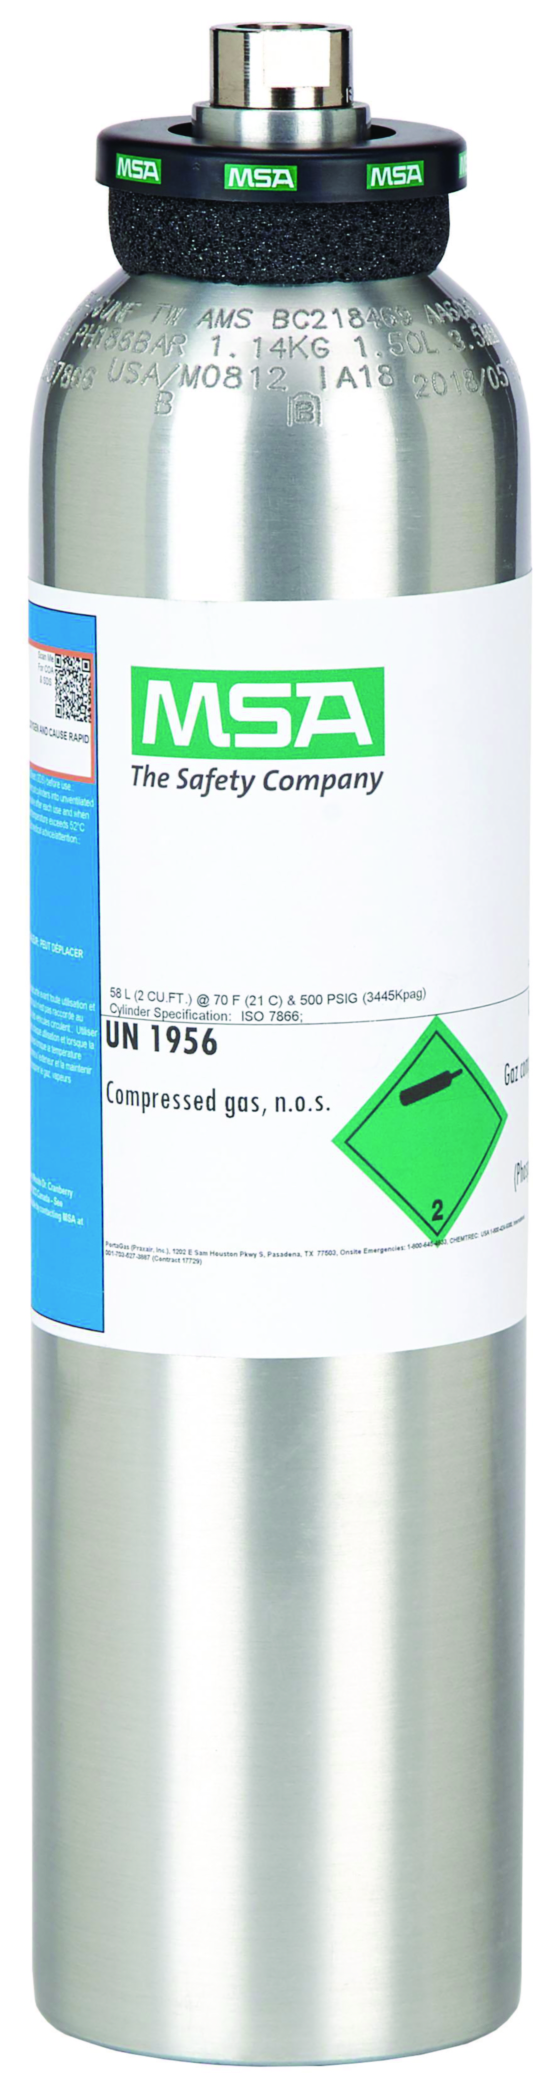 GASCO 105L-37-1000 Calibration Gas Cylinder with 1000 ppm Carbon Dioxide 105 L Aluminum and 5//8-18 UNF Valve Inlet Connection Balance Air